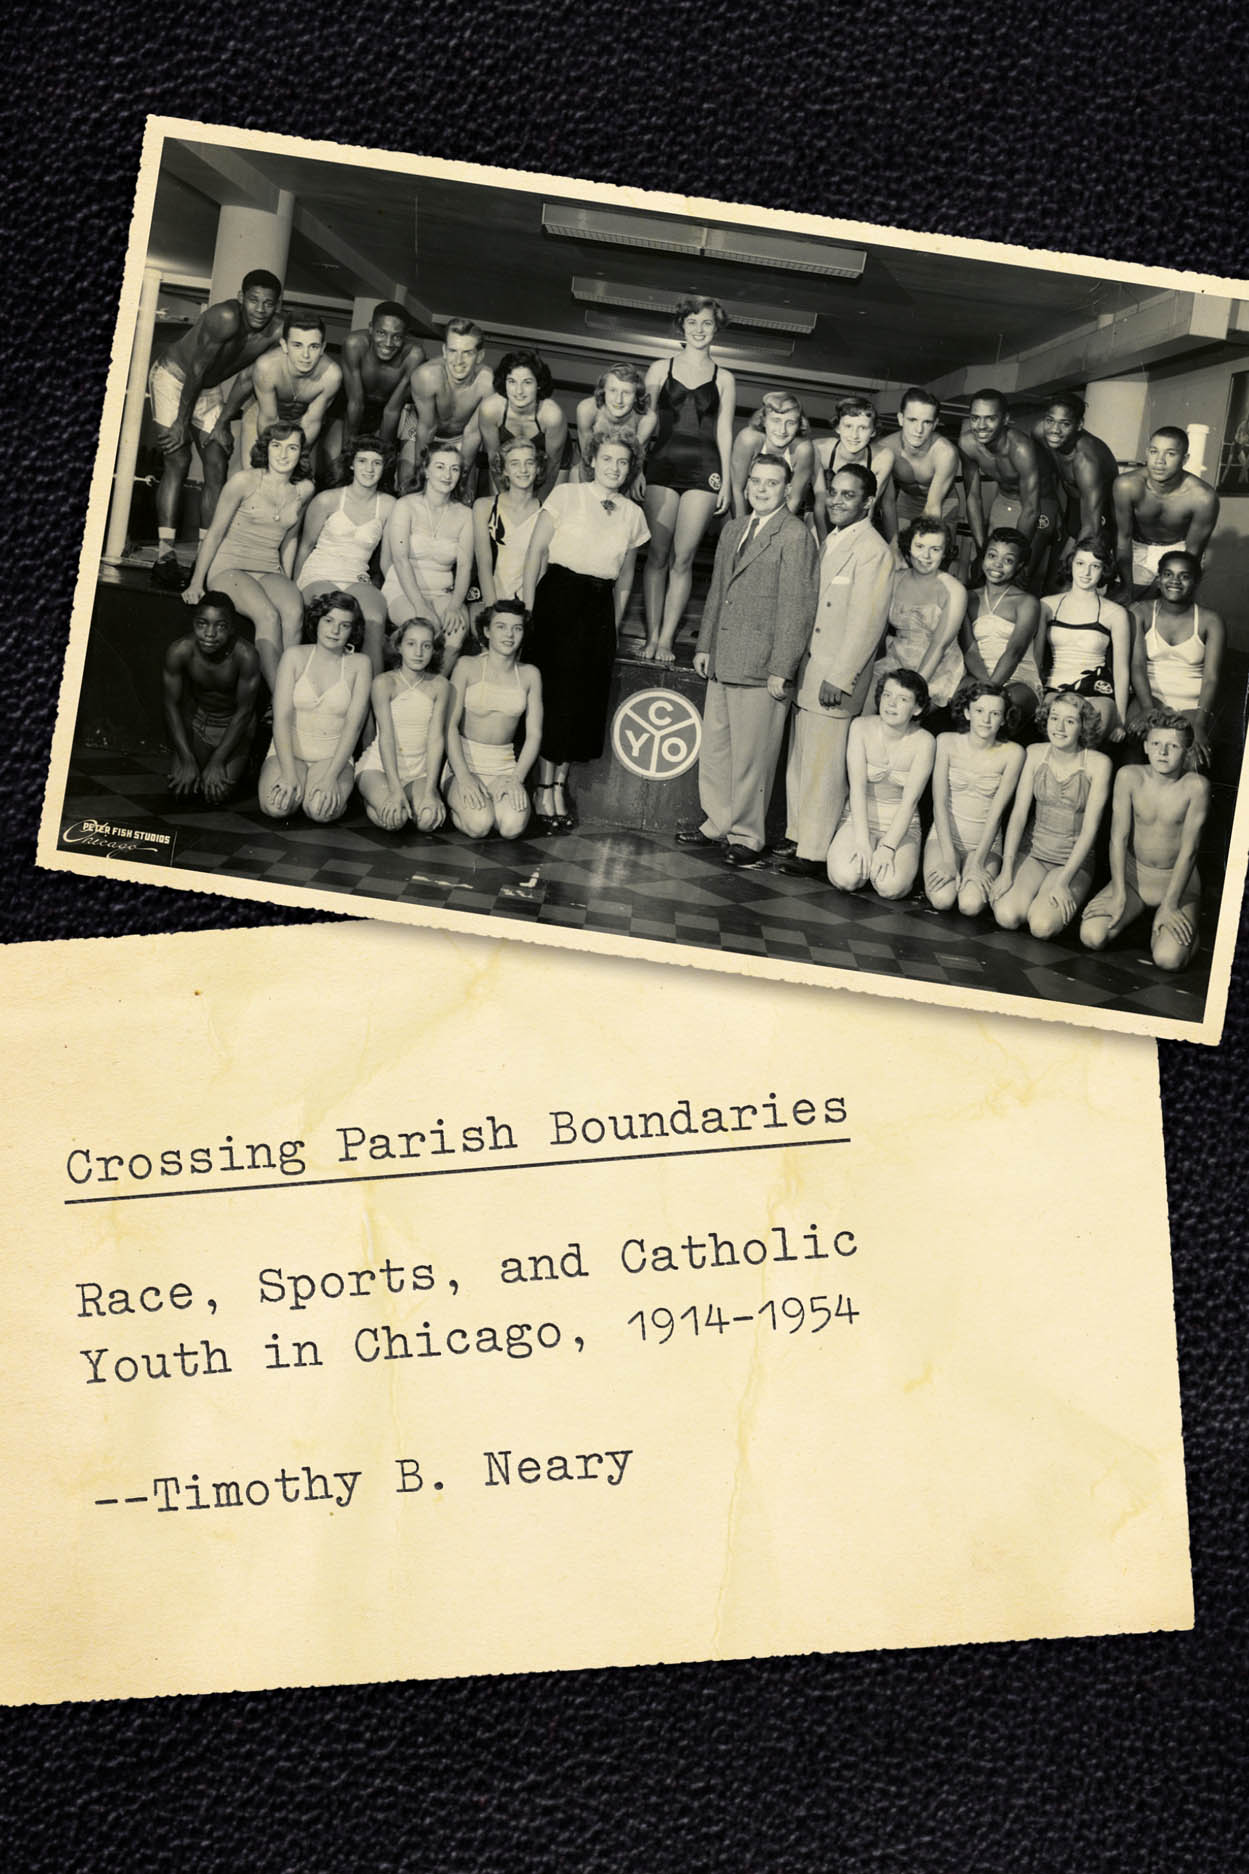 Crossing Parish Boundaries: Race, Sports, and Catholic Youth in Chicago, 1914-1954